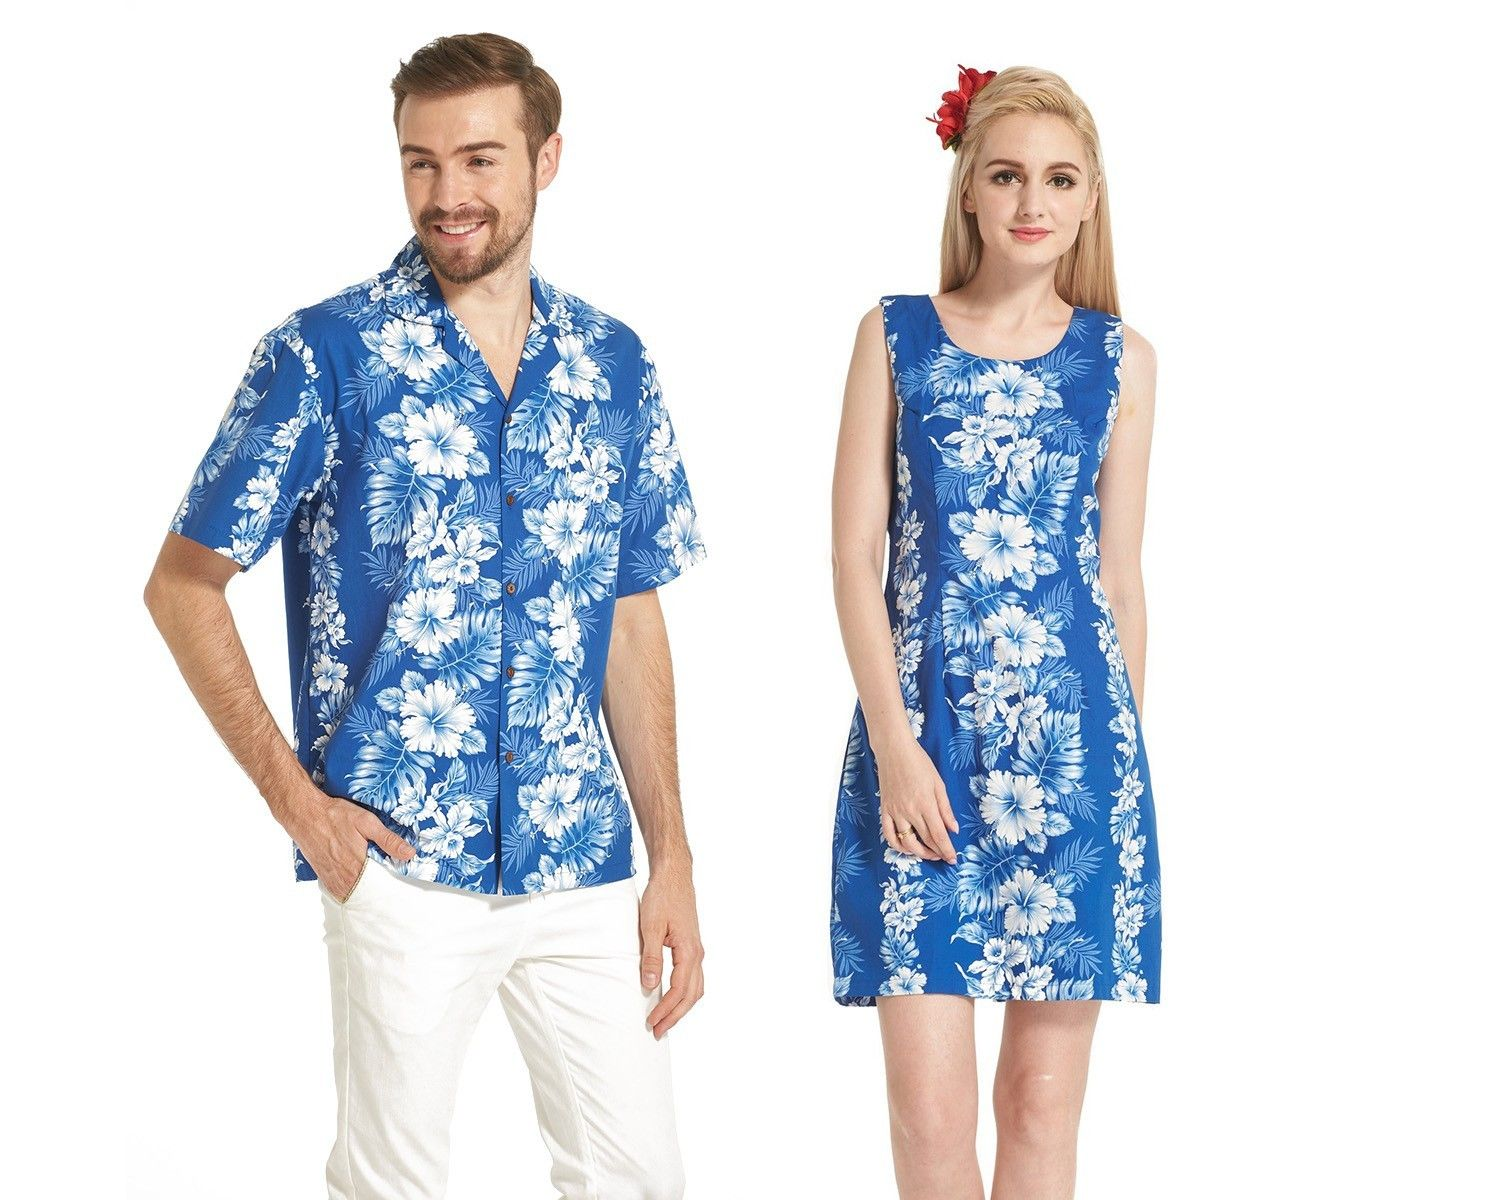 480b06f6a89 COUPLE MATCHING MADE IN HAWAII MEN SHIRT AND WOMEN TANK DRESSES in White  Floral in Blue